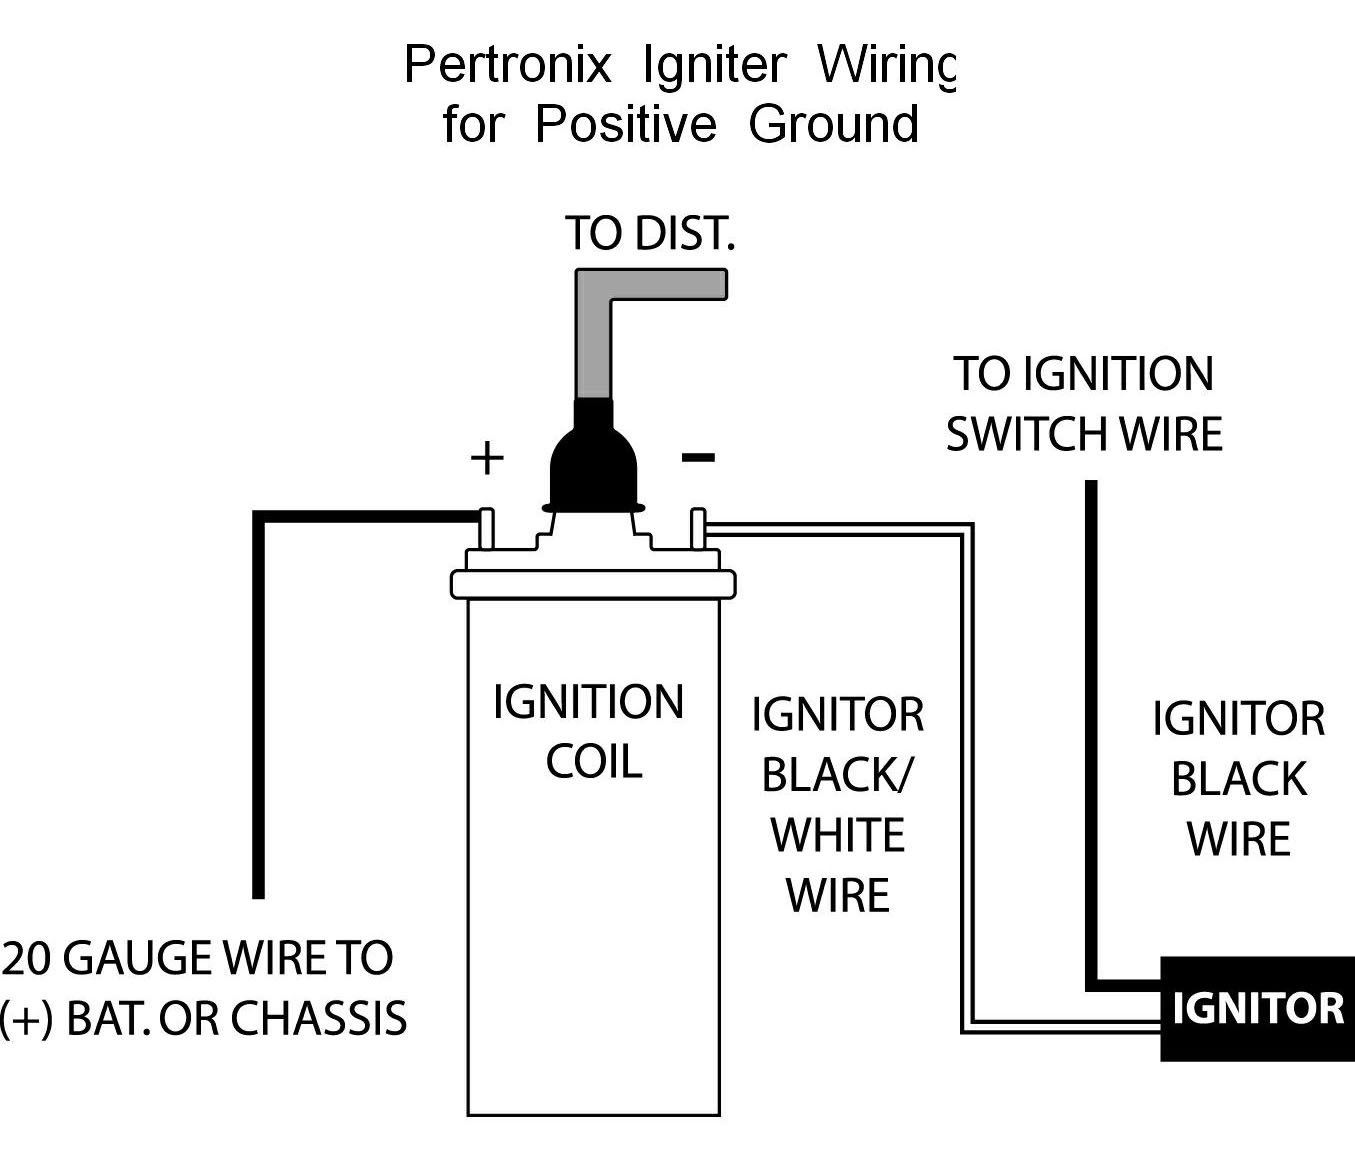 PerPosGndWiring pertronix positive ground wiring 12 volt coil wiring diagram at gsmx.co